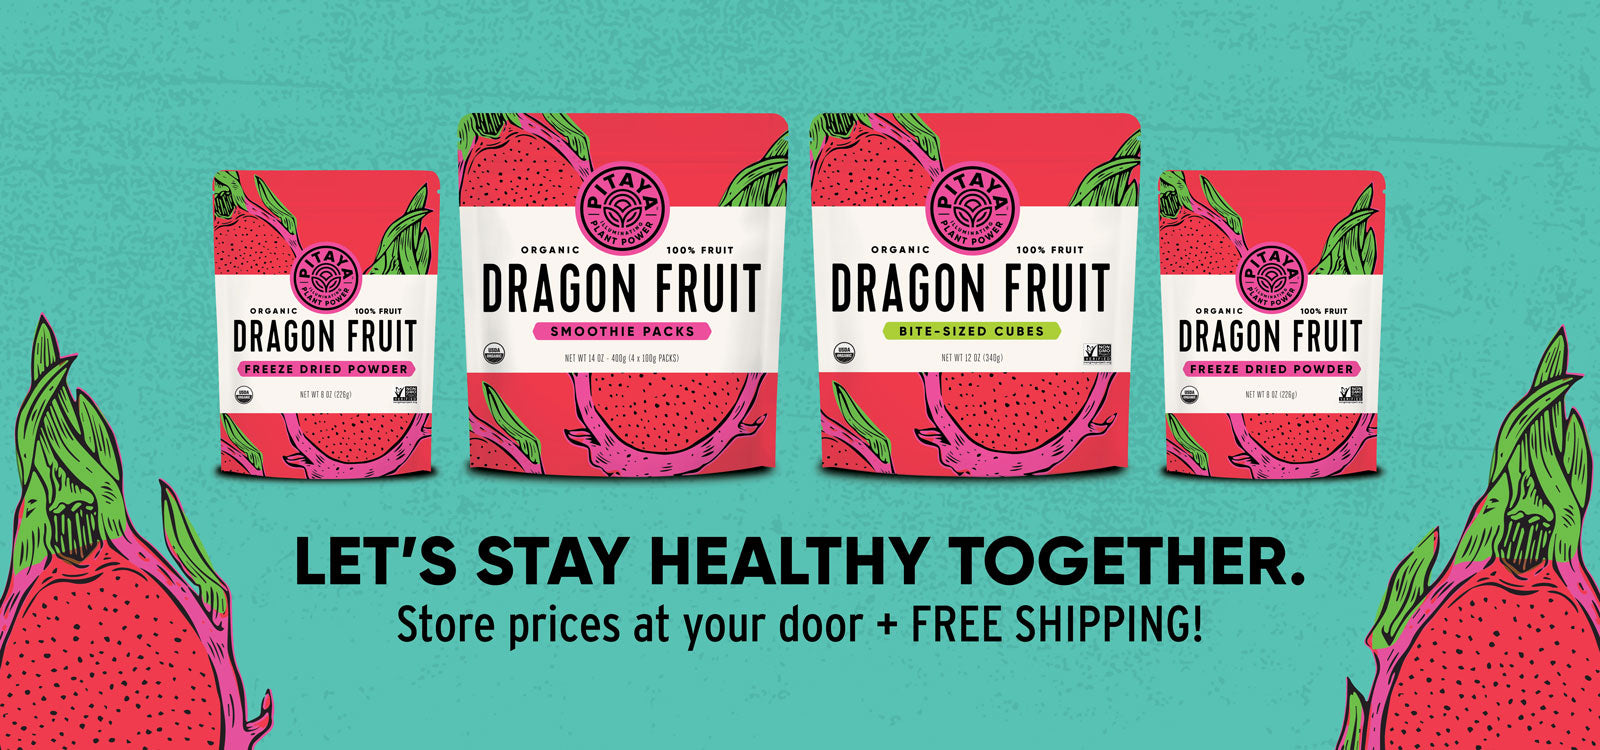 Dragon Fruit Products by Pitaya Foods